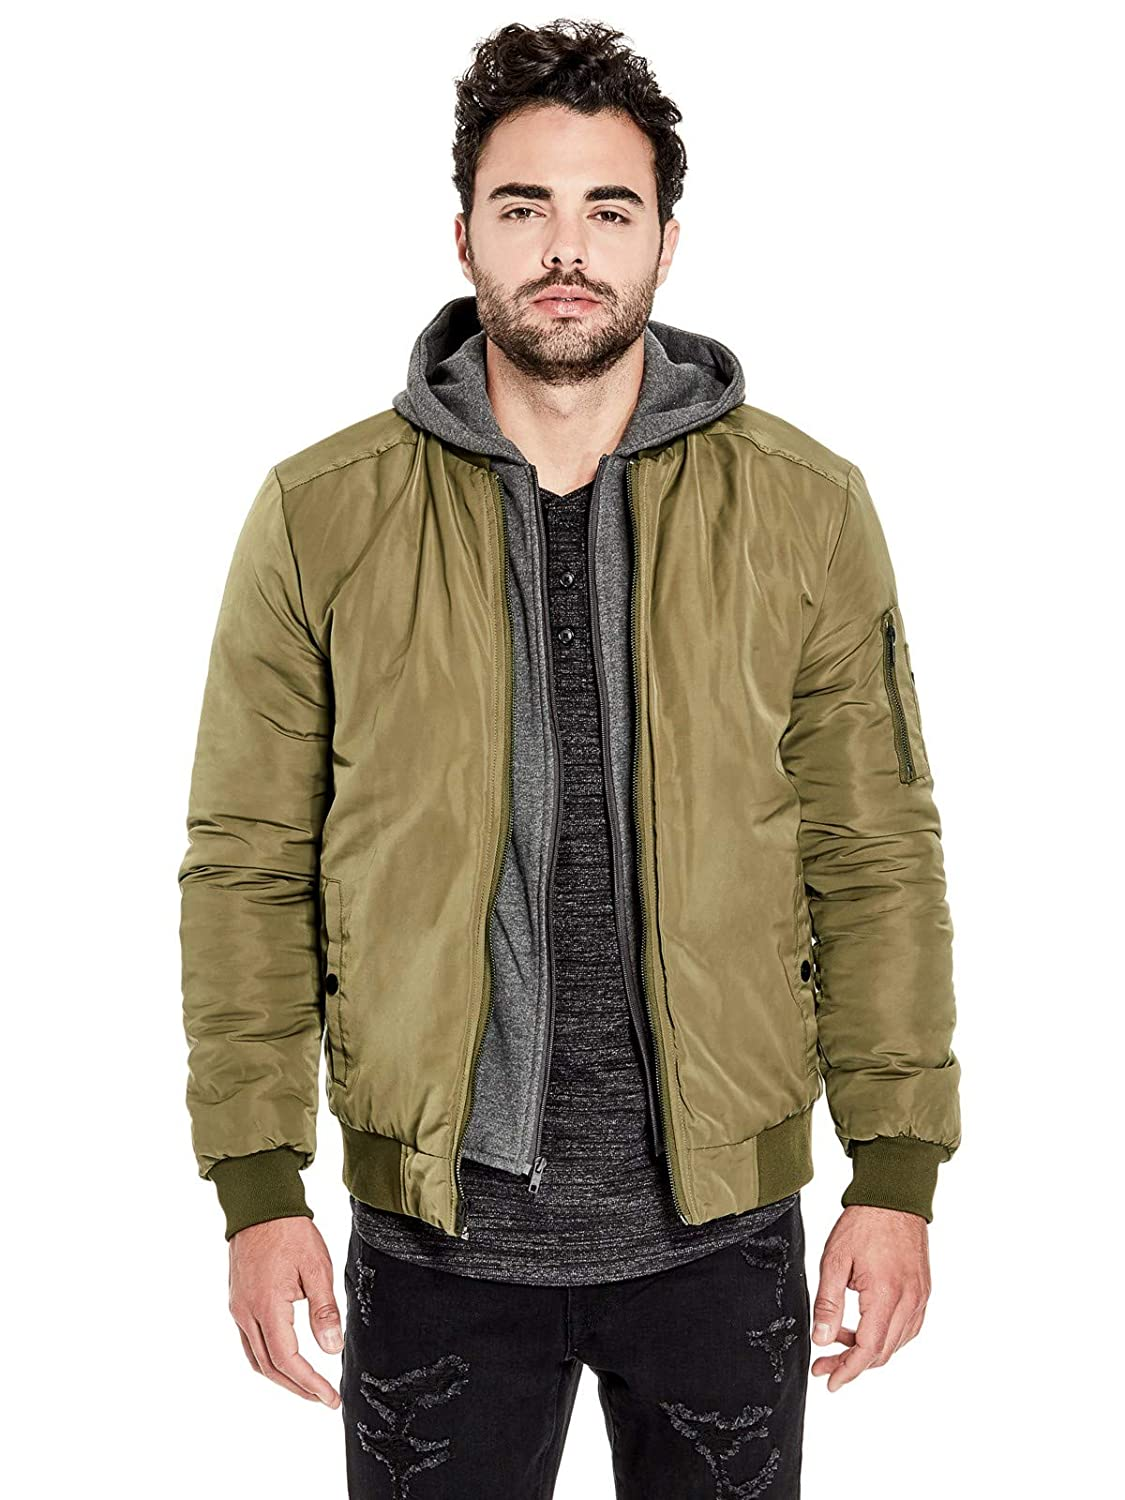 Guess Factory Men's Rick Hooded Bomber Jacket GuessFactory